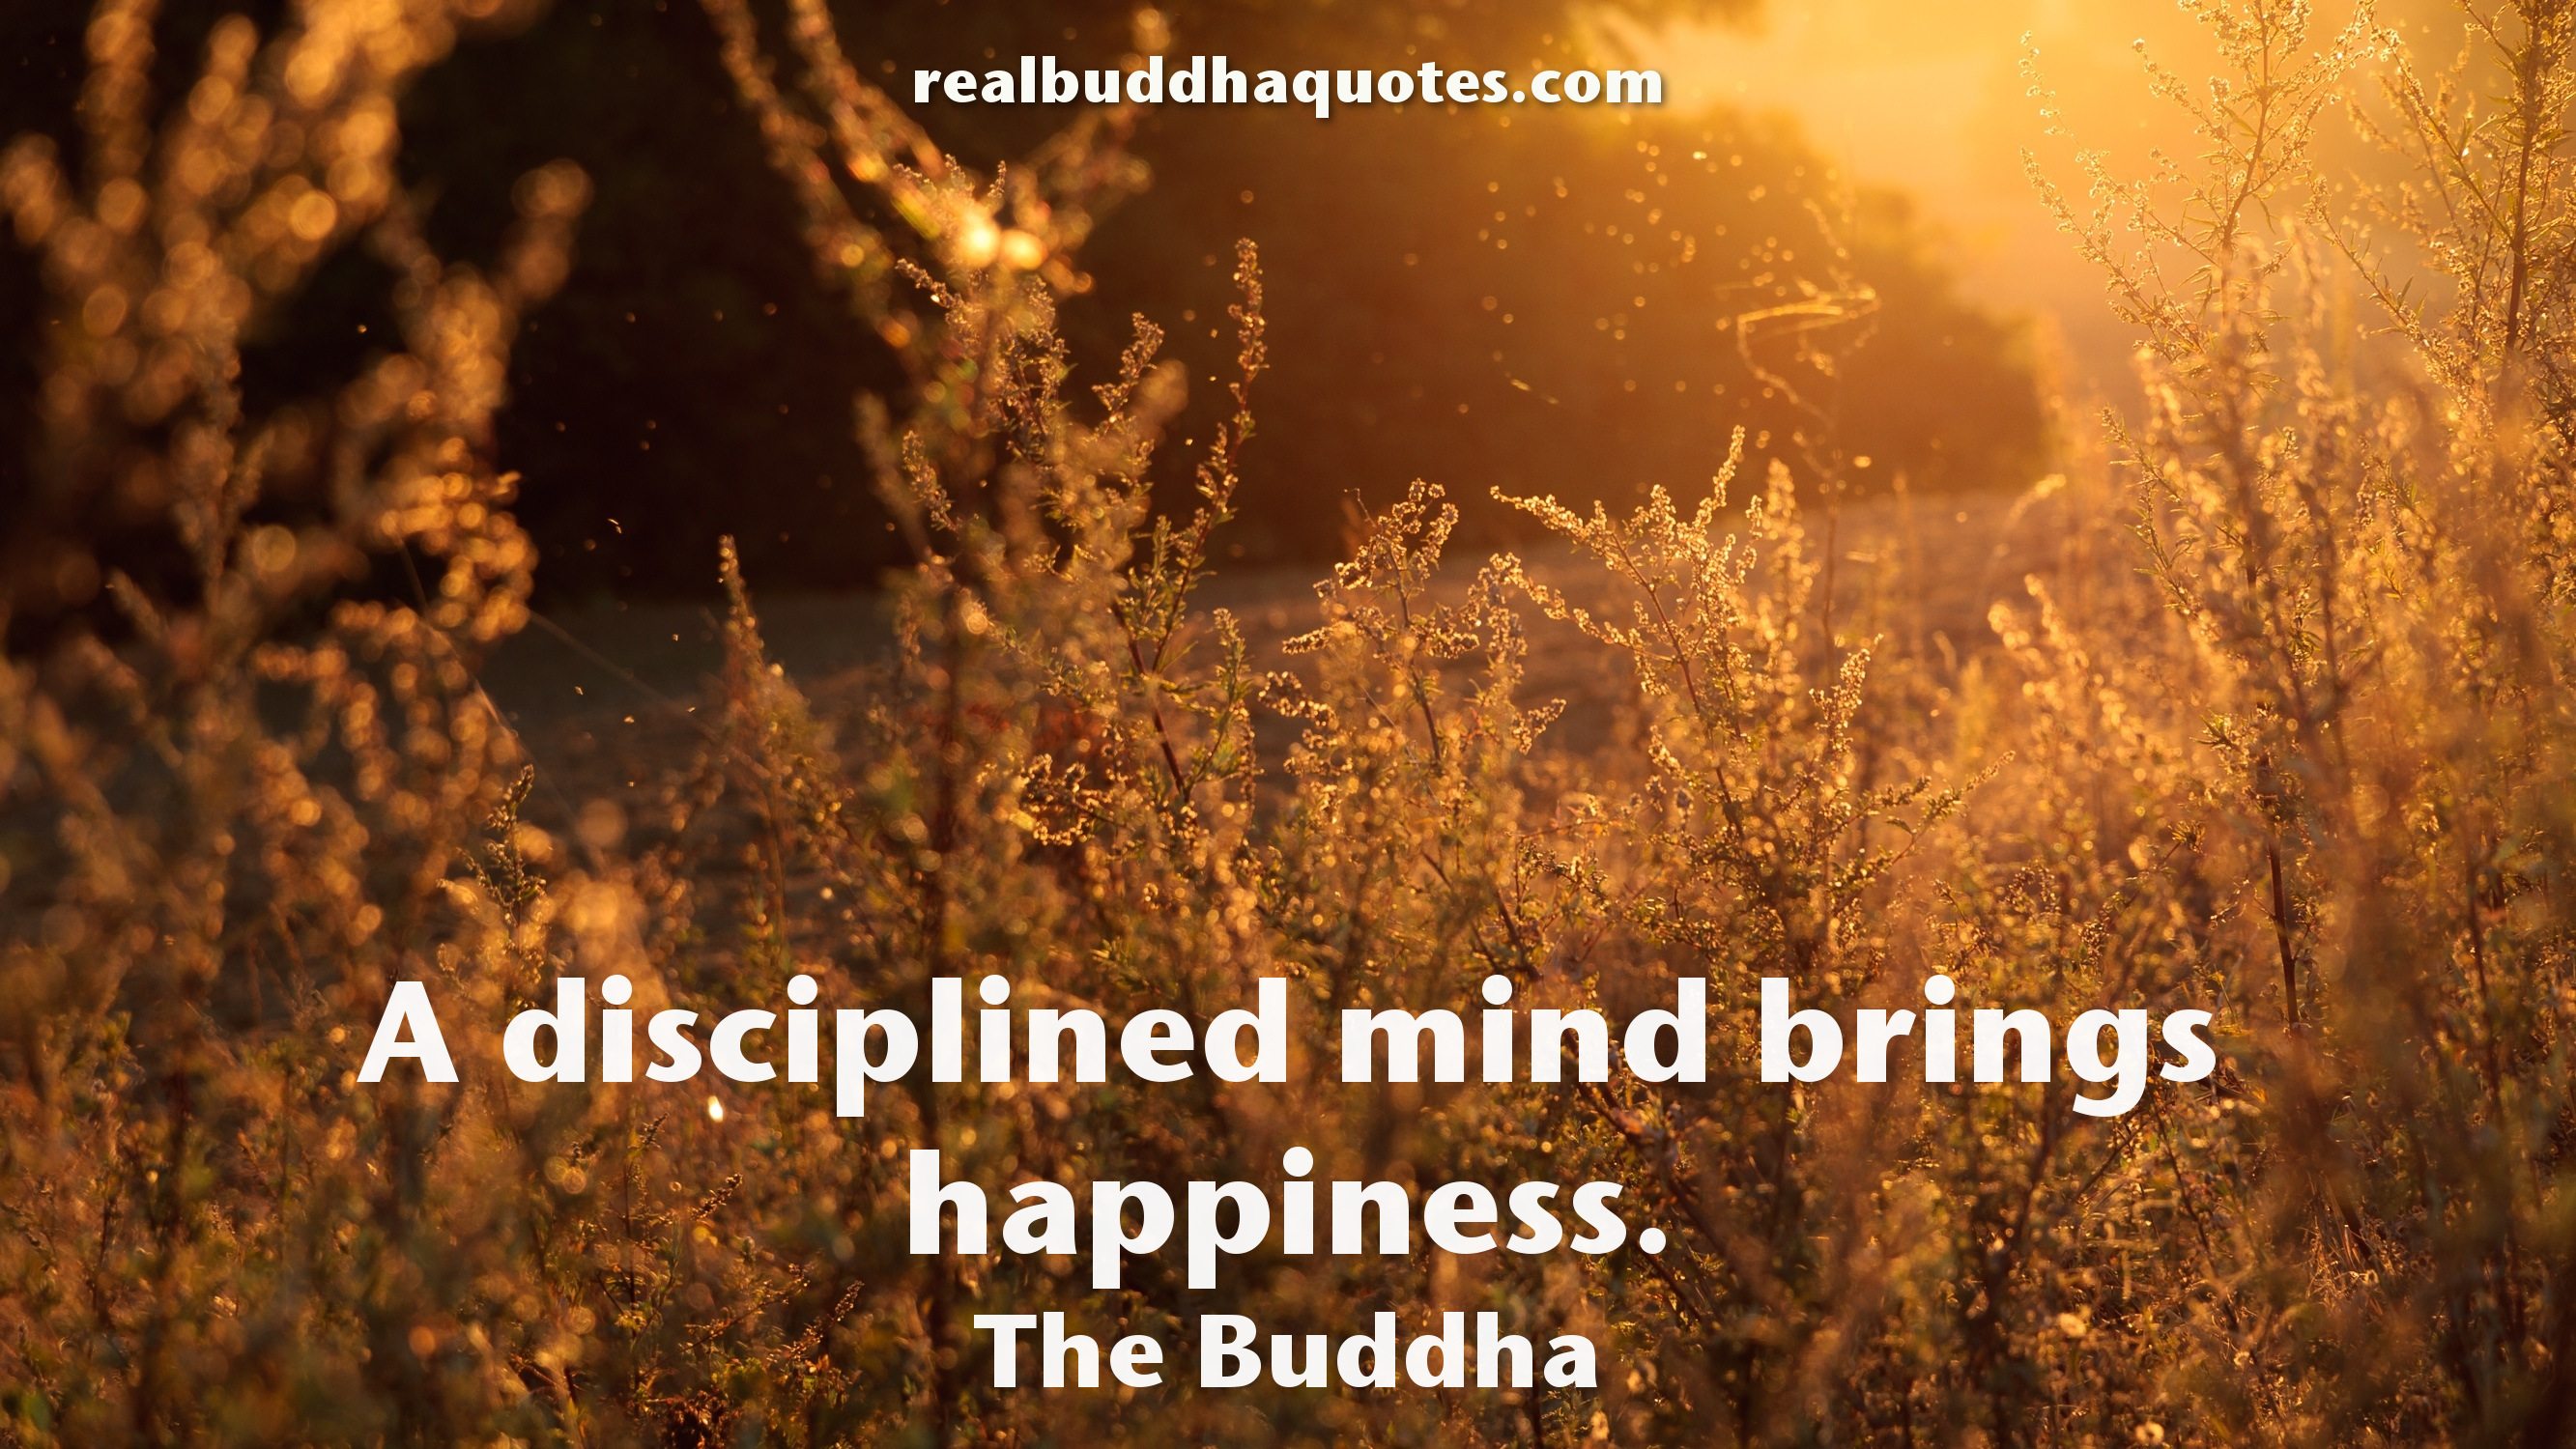 Buddha Quotes On Happiness Awesome Happiness  Real Buddha Quotes